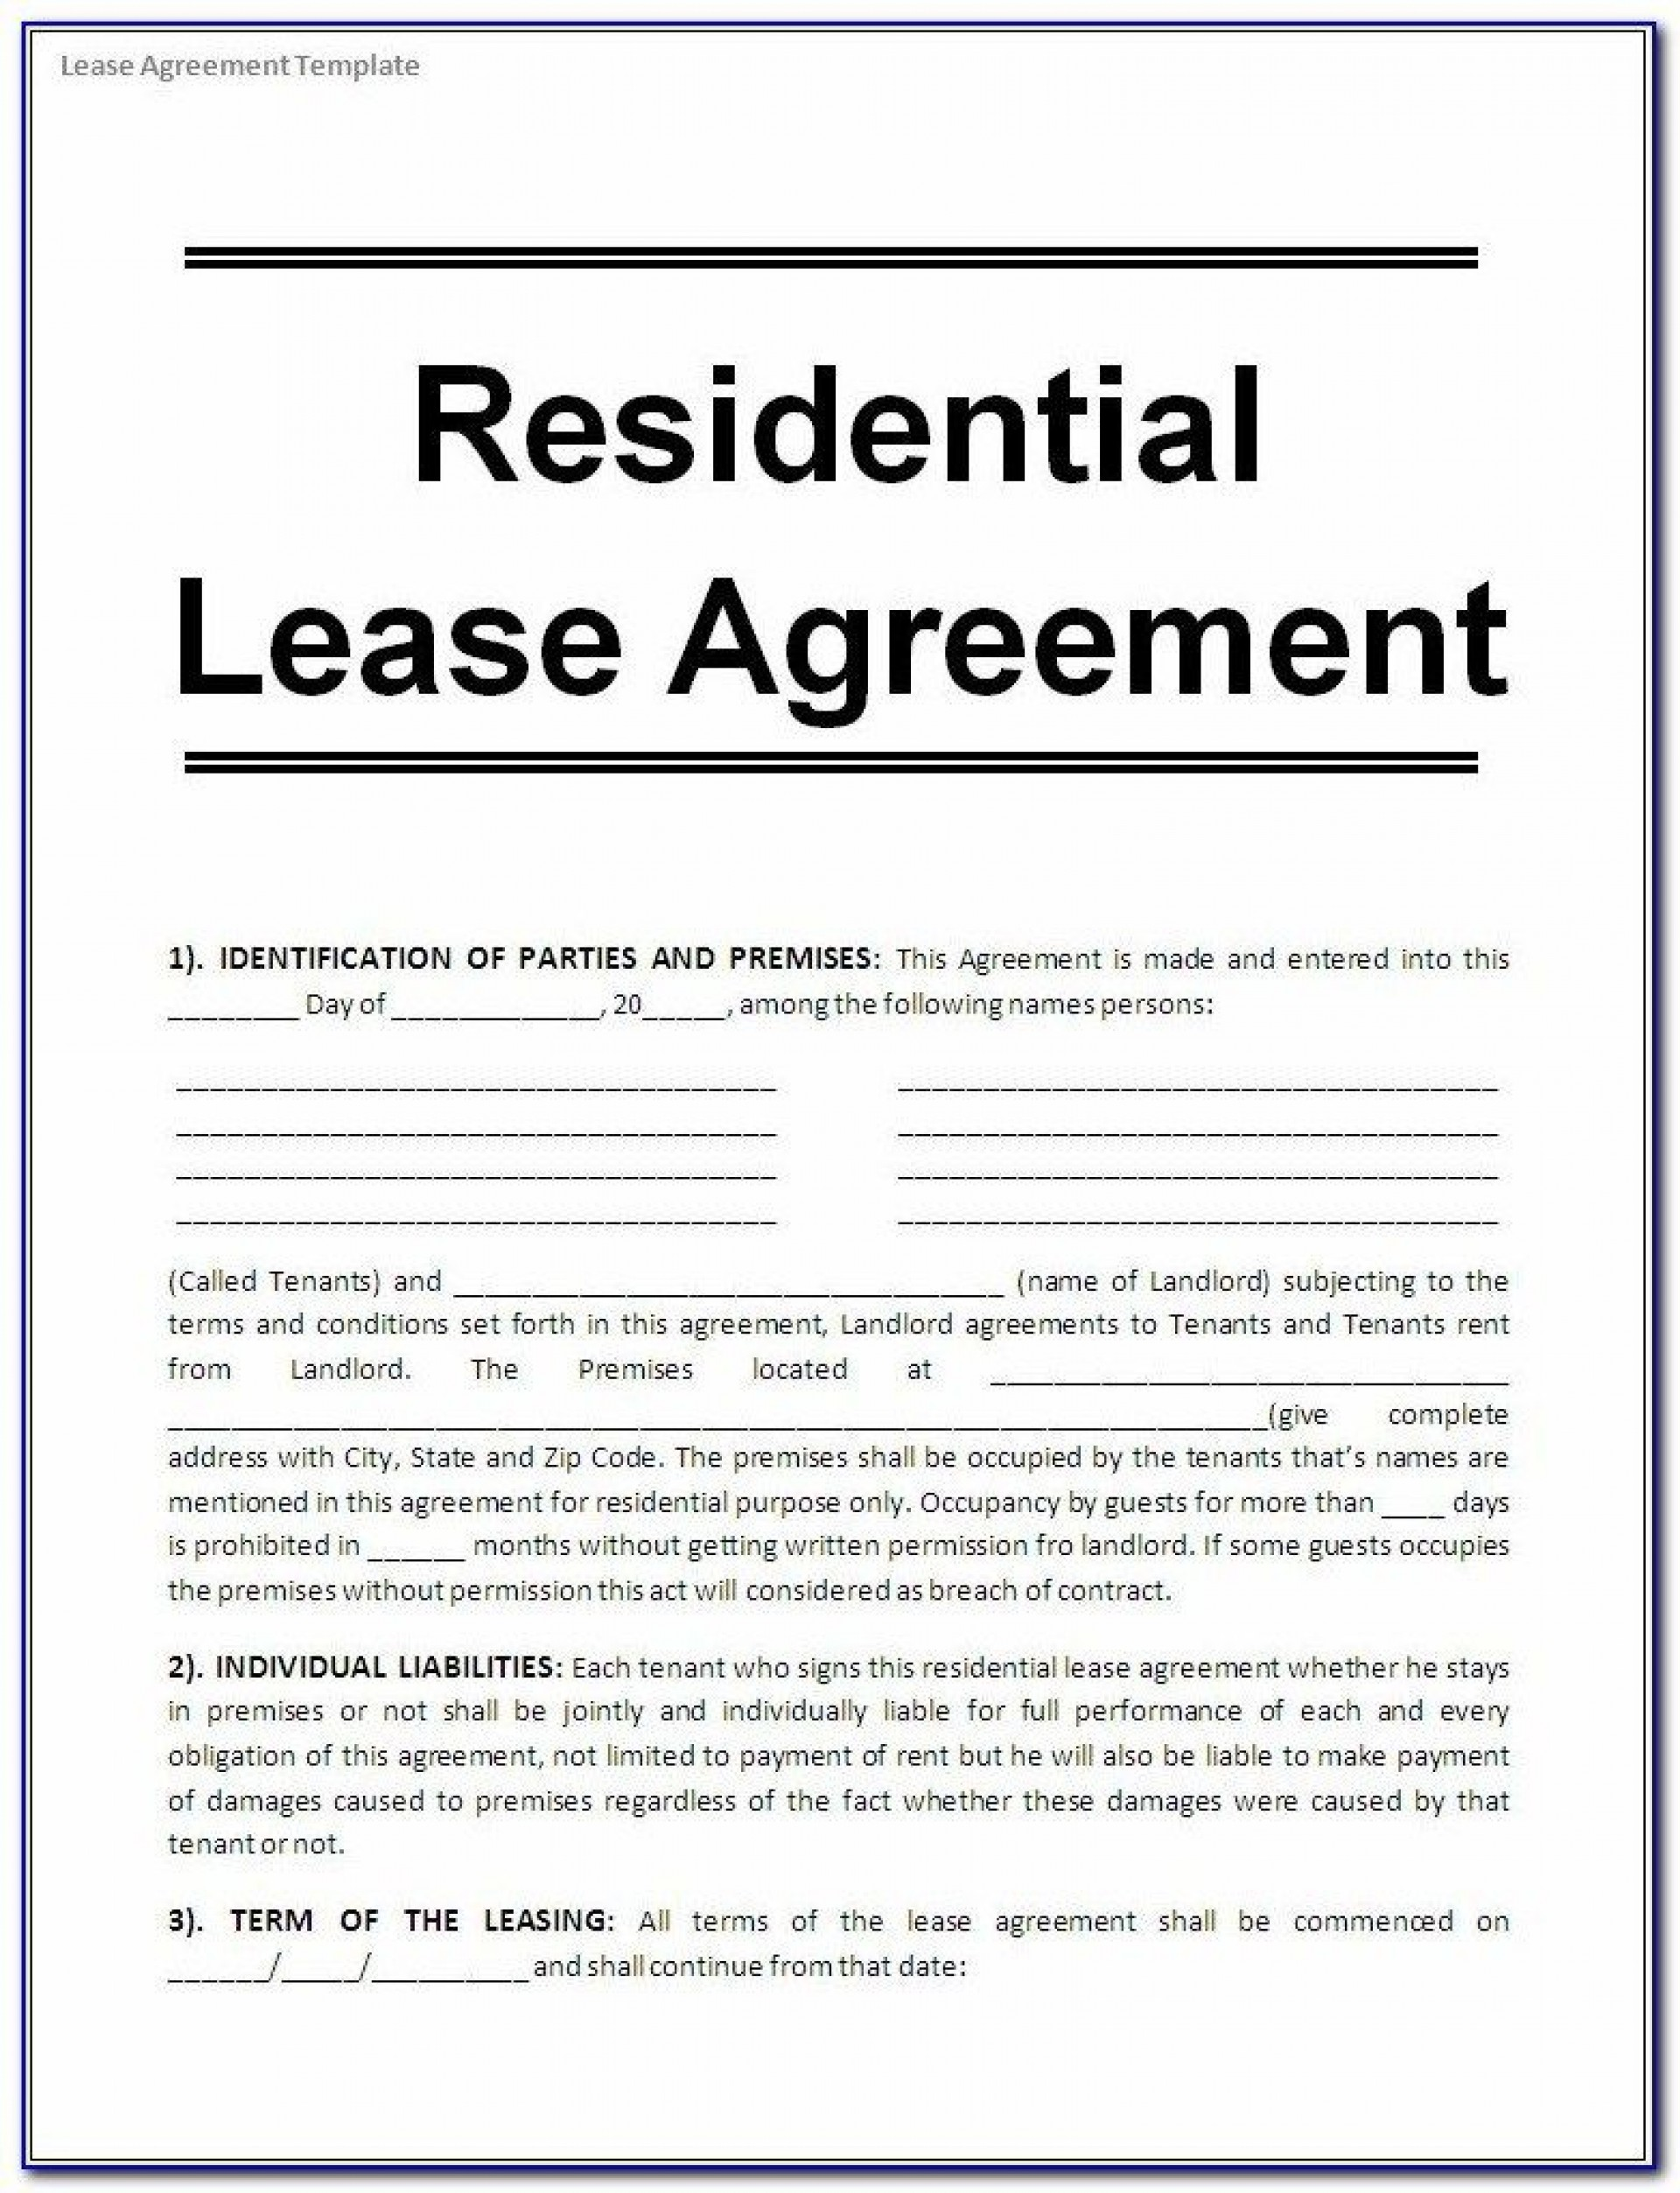 006 Rare Rental Agreement Template Word South Africa Inspiration  Room Doc Application Form1920